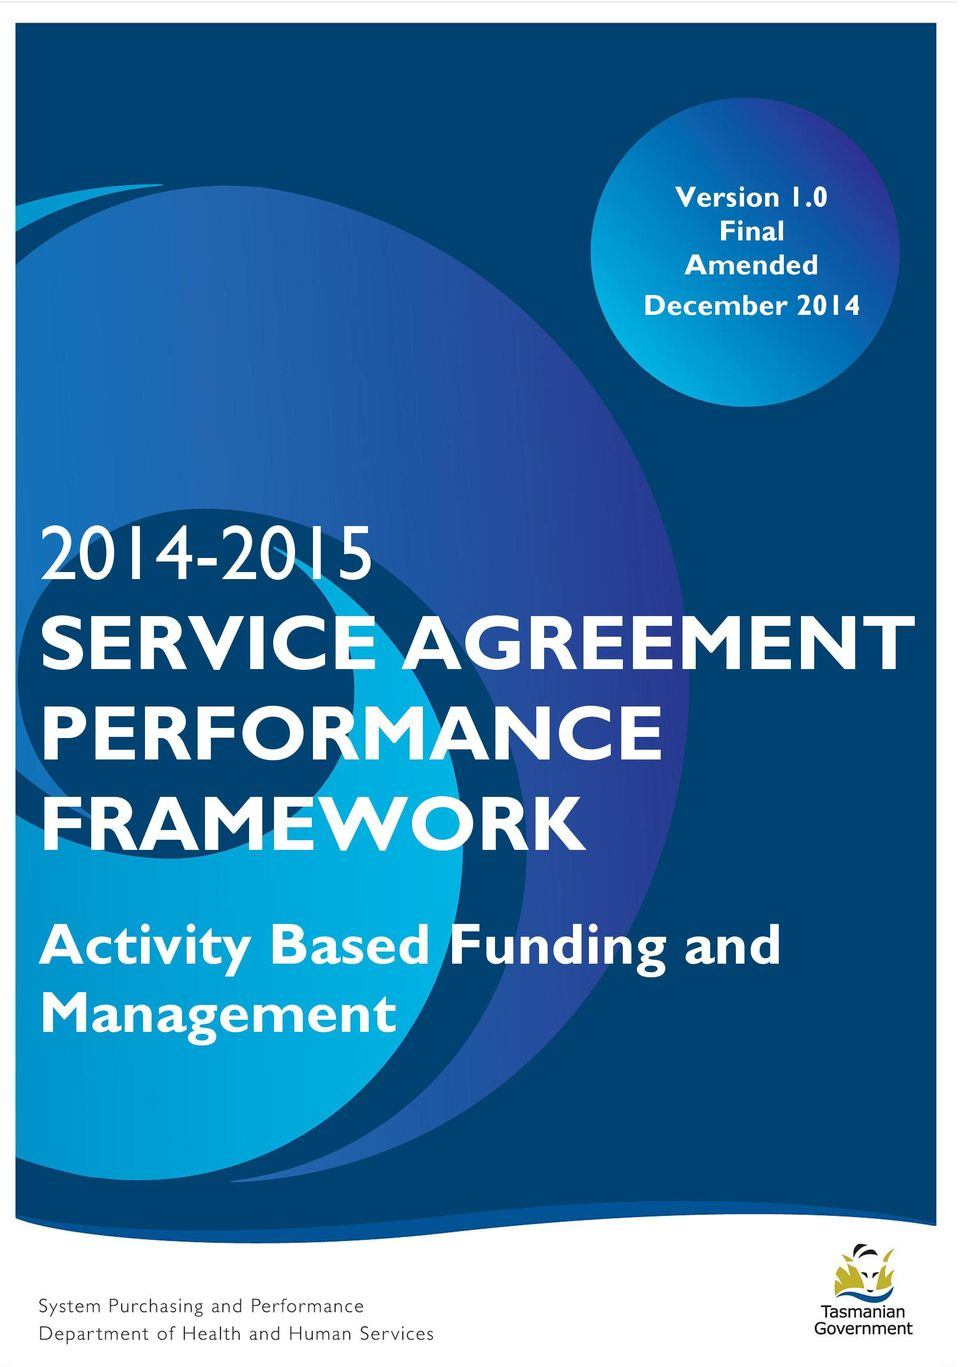 2014-2015 SERVICE AGREEMENT